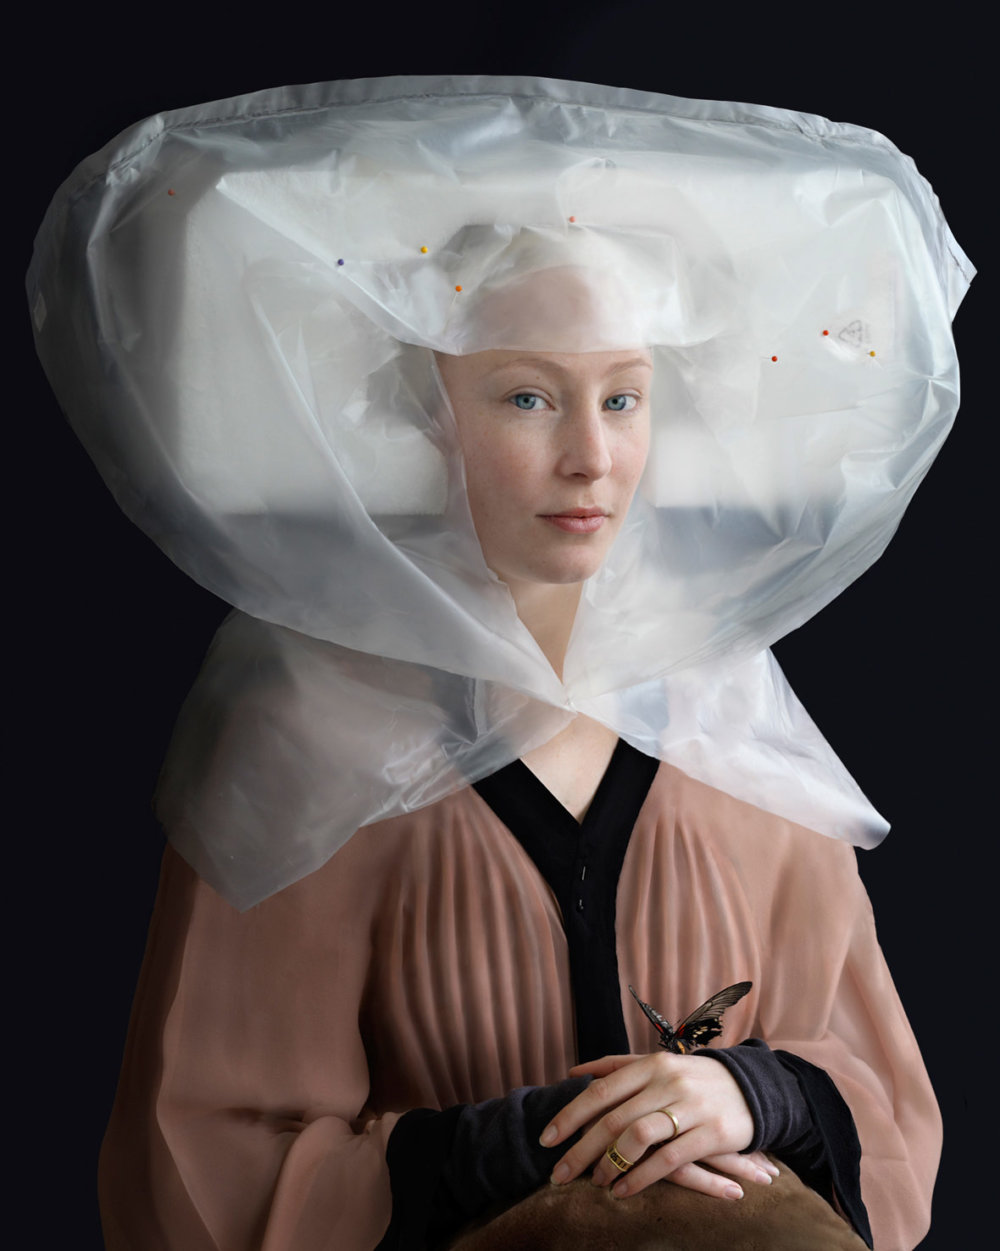 Discarded Packaging Recycled Into Renaissance Costumes By Suzanne Jongmans 4